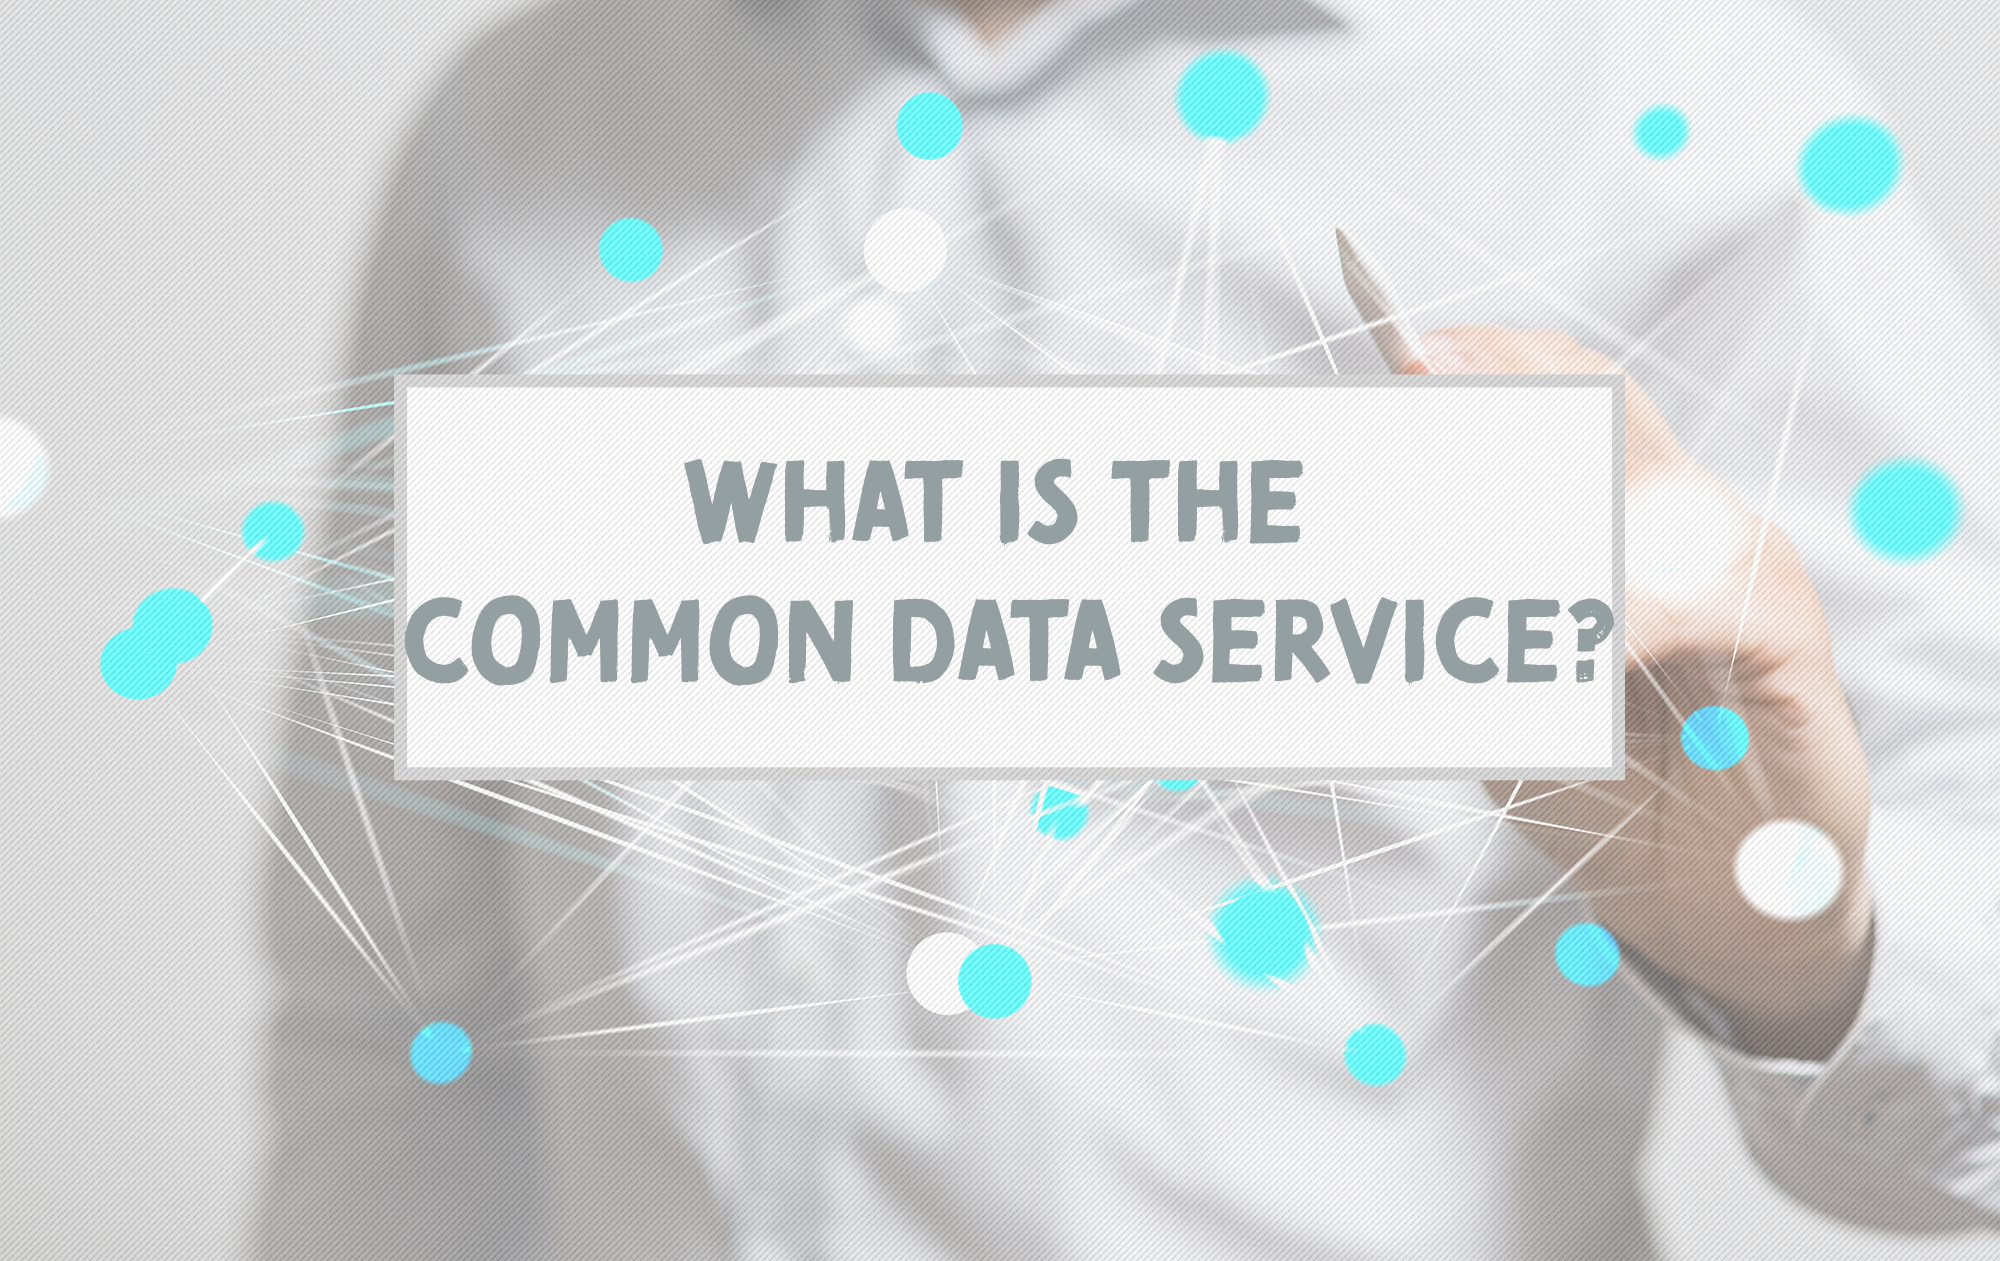 What is the Common Data Service?